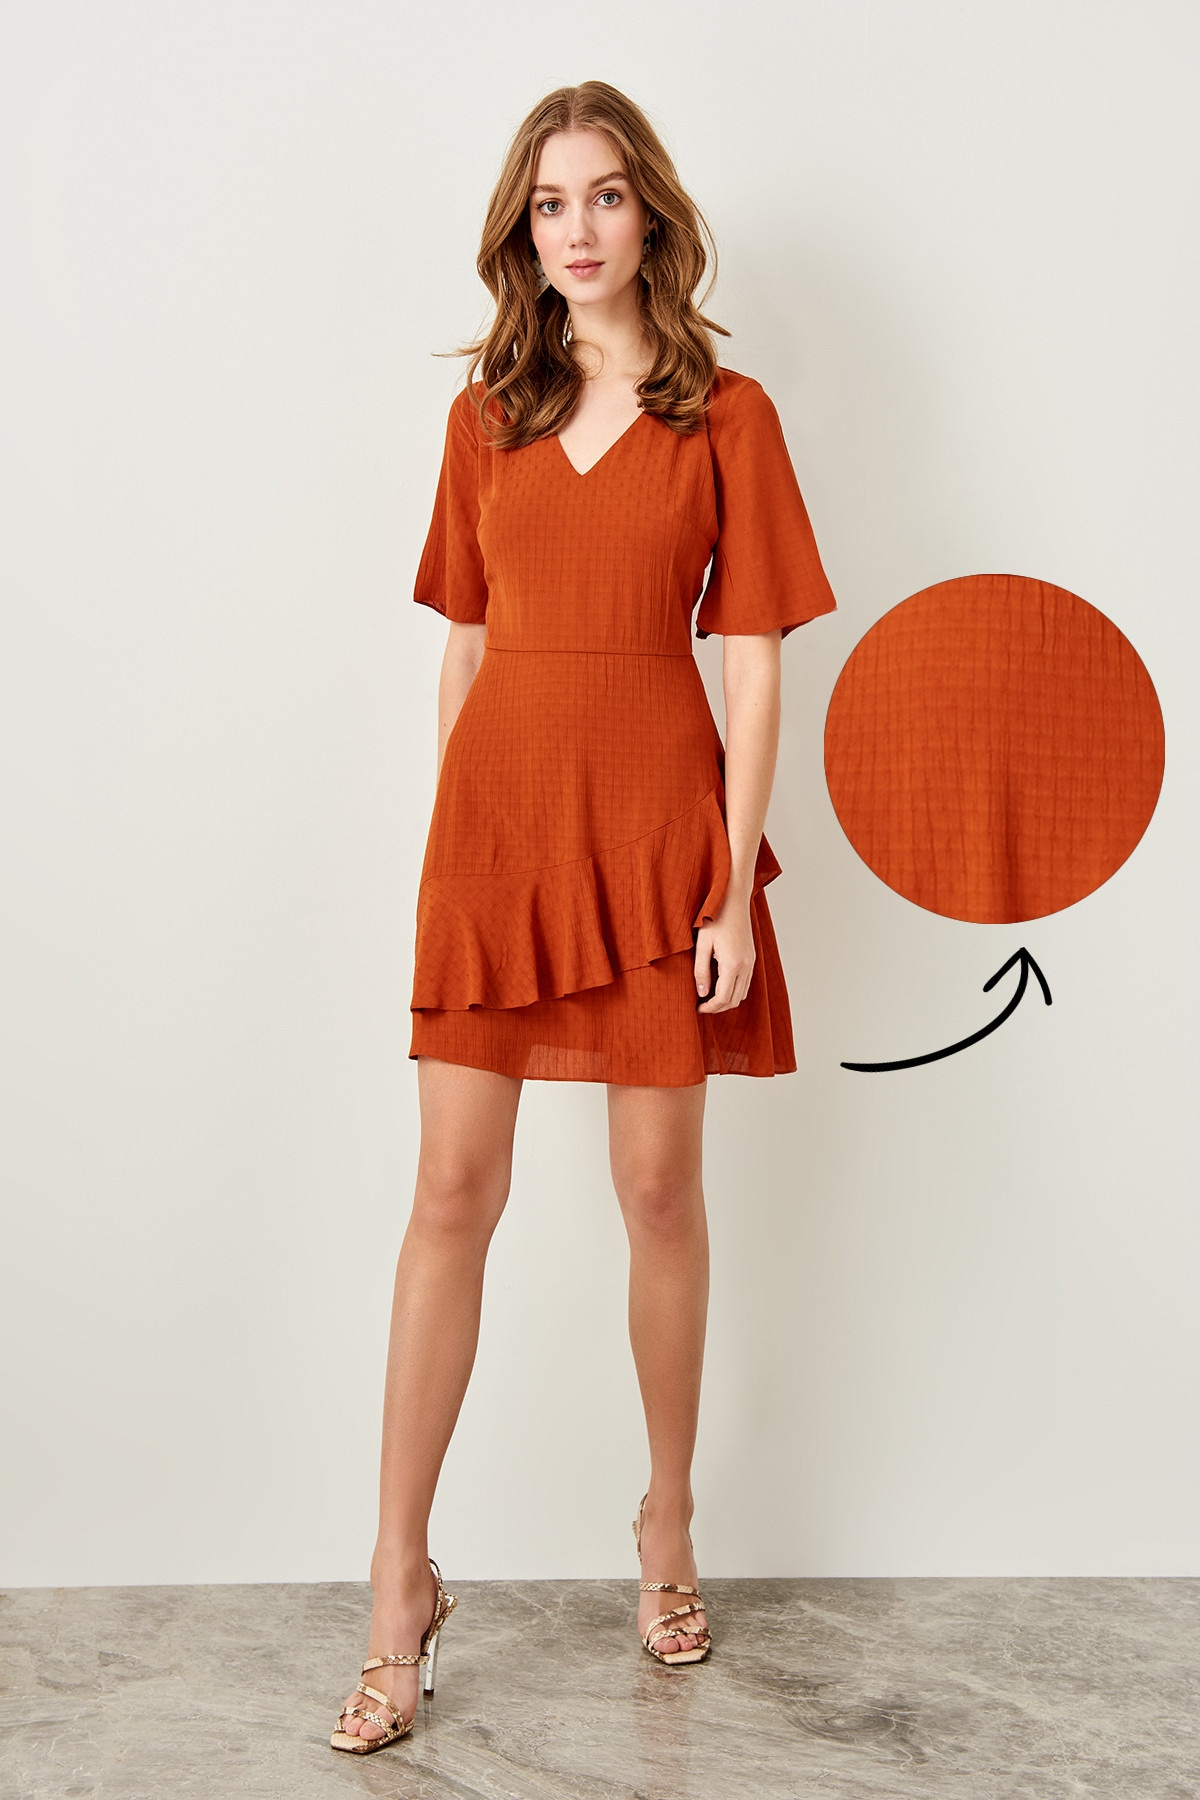 Trendyol Cinnamon Hand-Wheel Dress